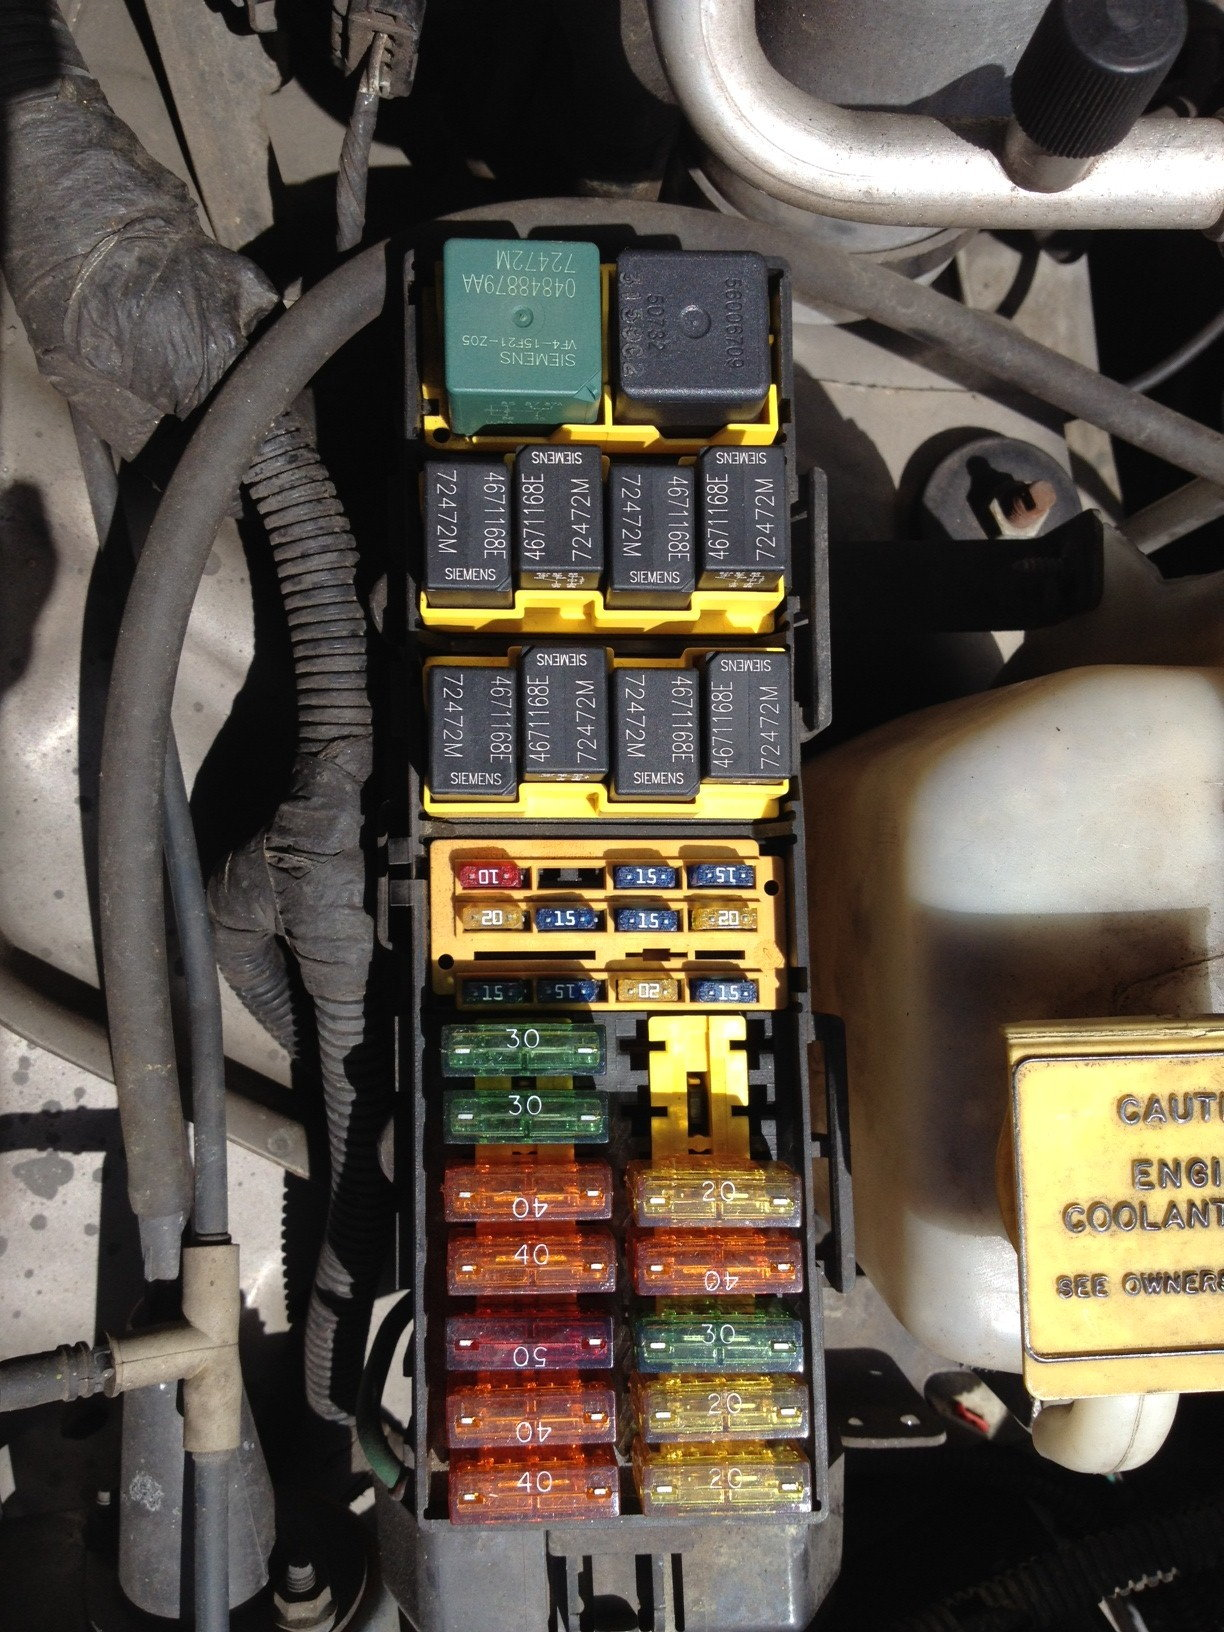 94 jeep cherokee sport radio wiring diagram grundfos booster pump of fuses on a wrangler under hood library